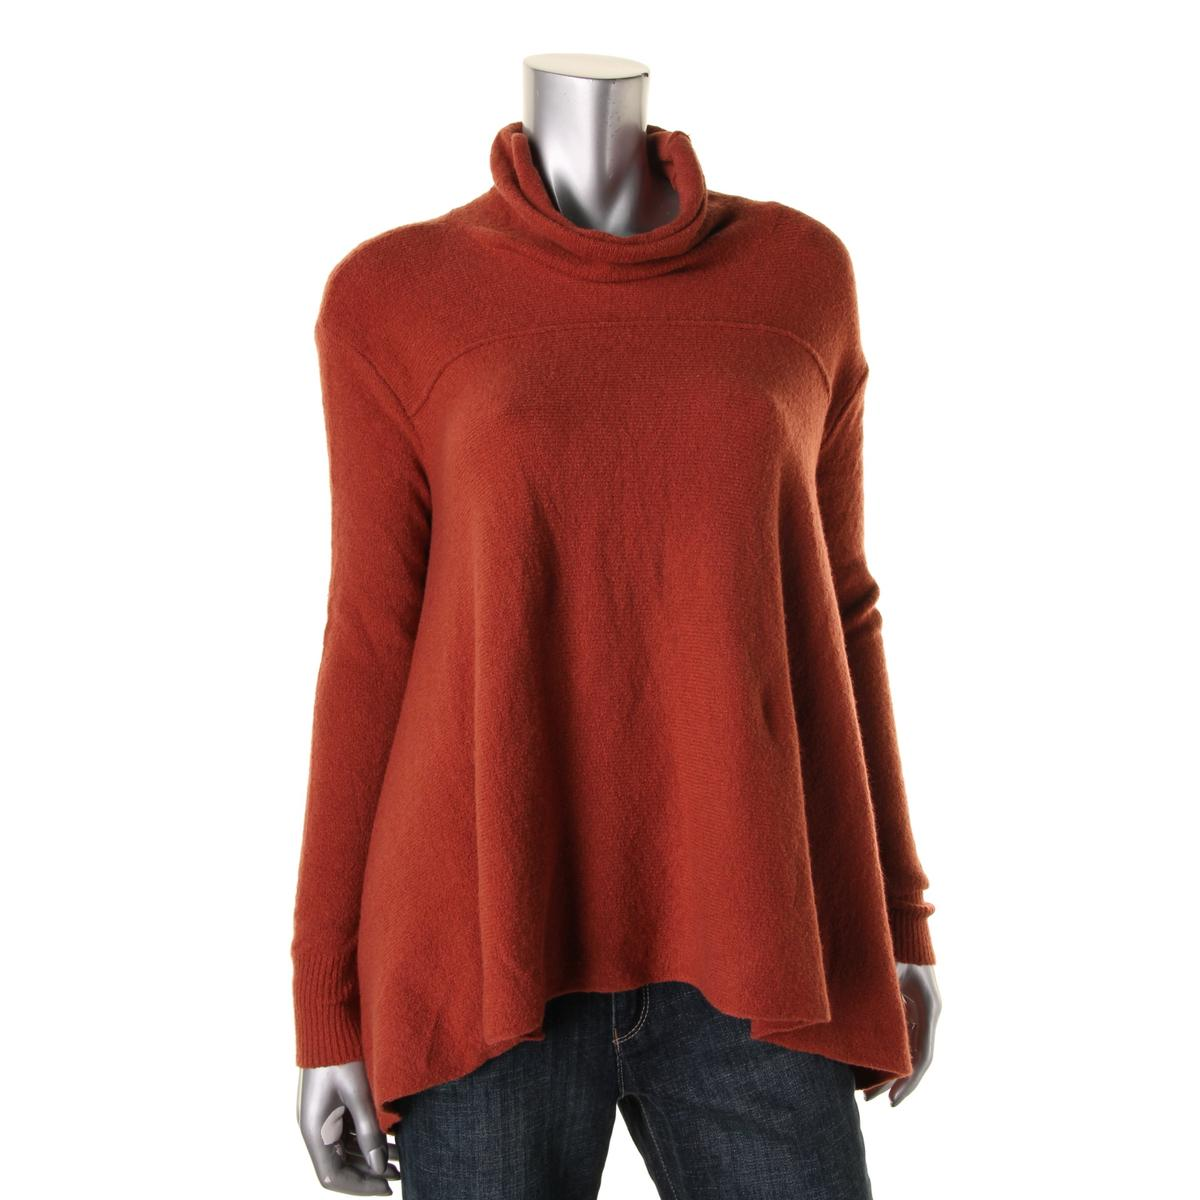 free people 8102 womens oversized turtleneck knit pullover sweater top bhfo ebay. Black Bedroom Furniture Sets. Home Design Ideas